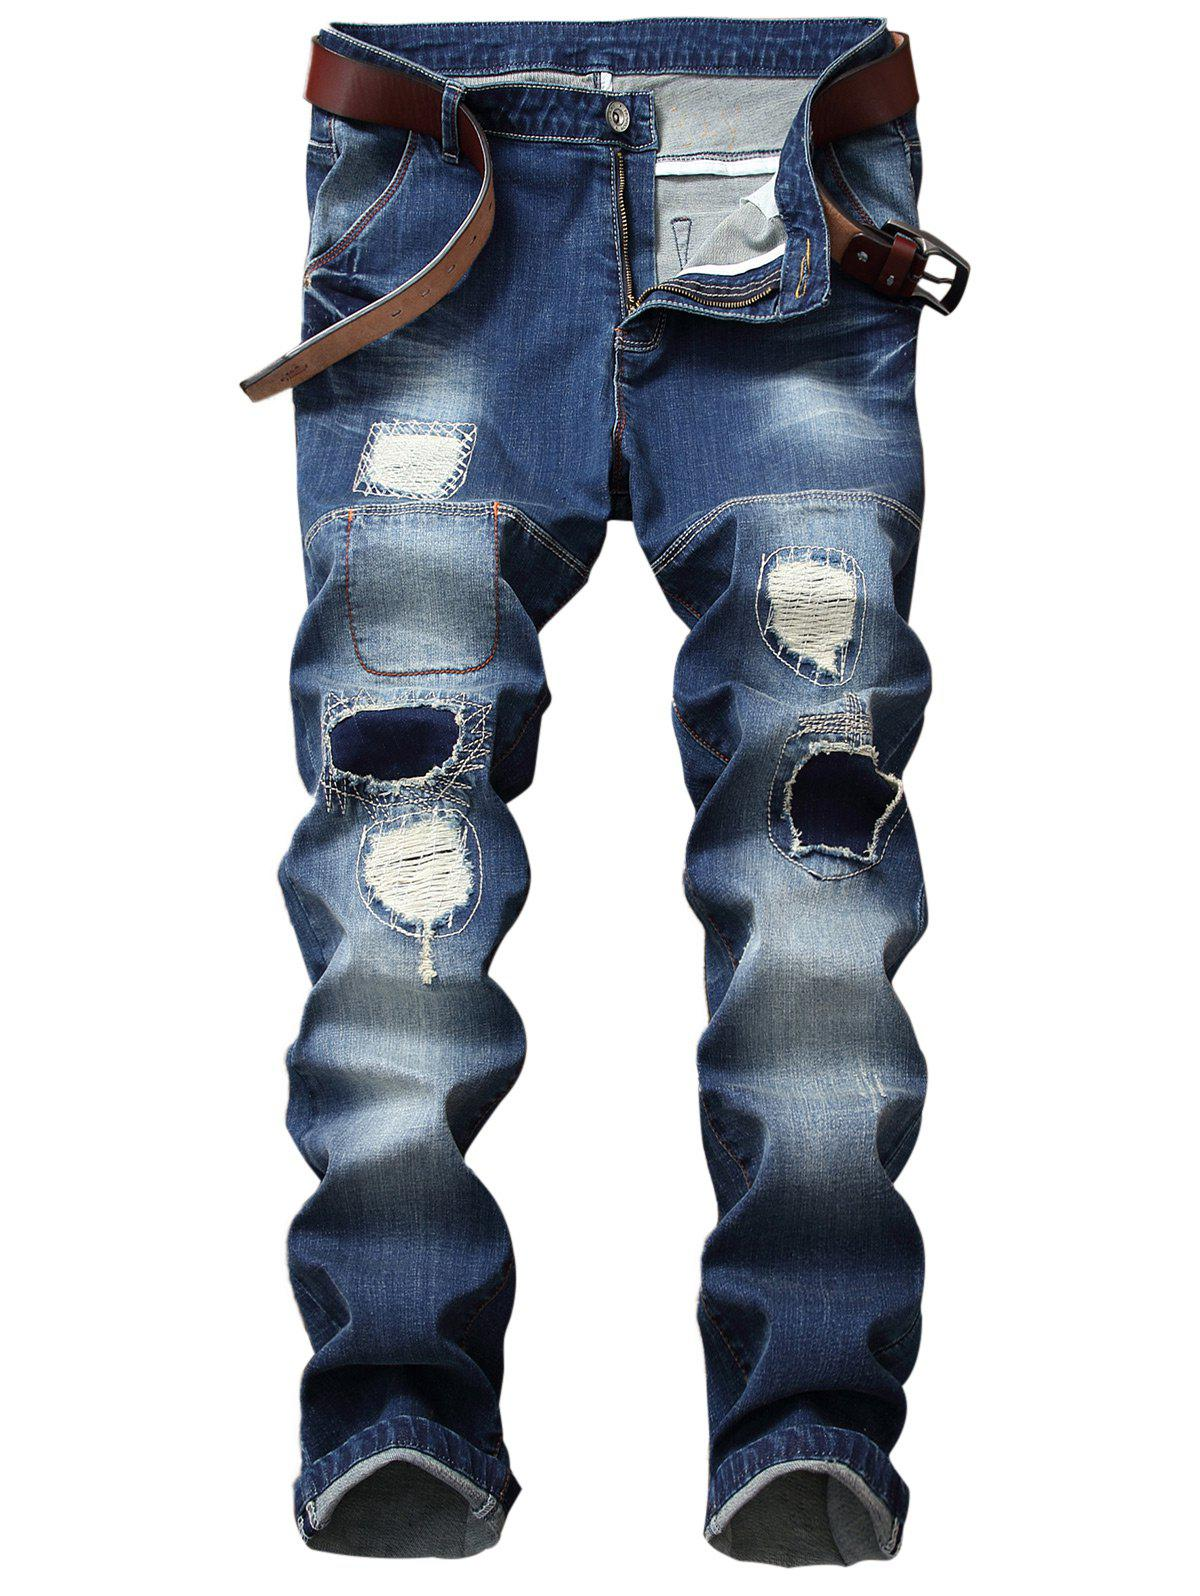 Straight Leg Patch Design Ripped Jeans patch design skinny ripped jeans with pockets